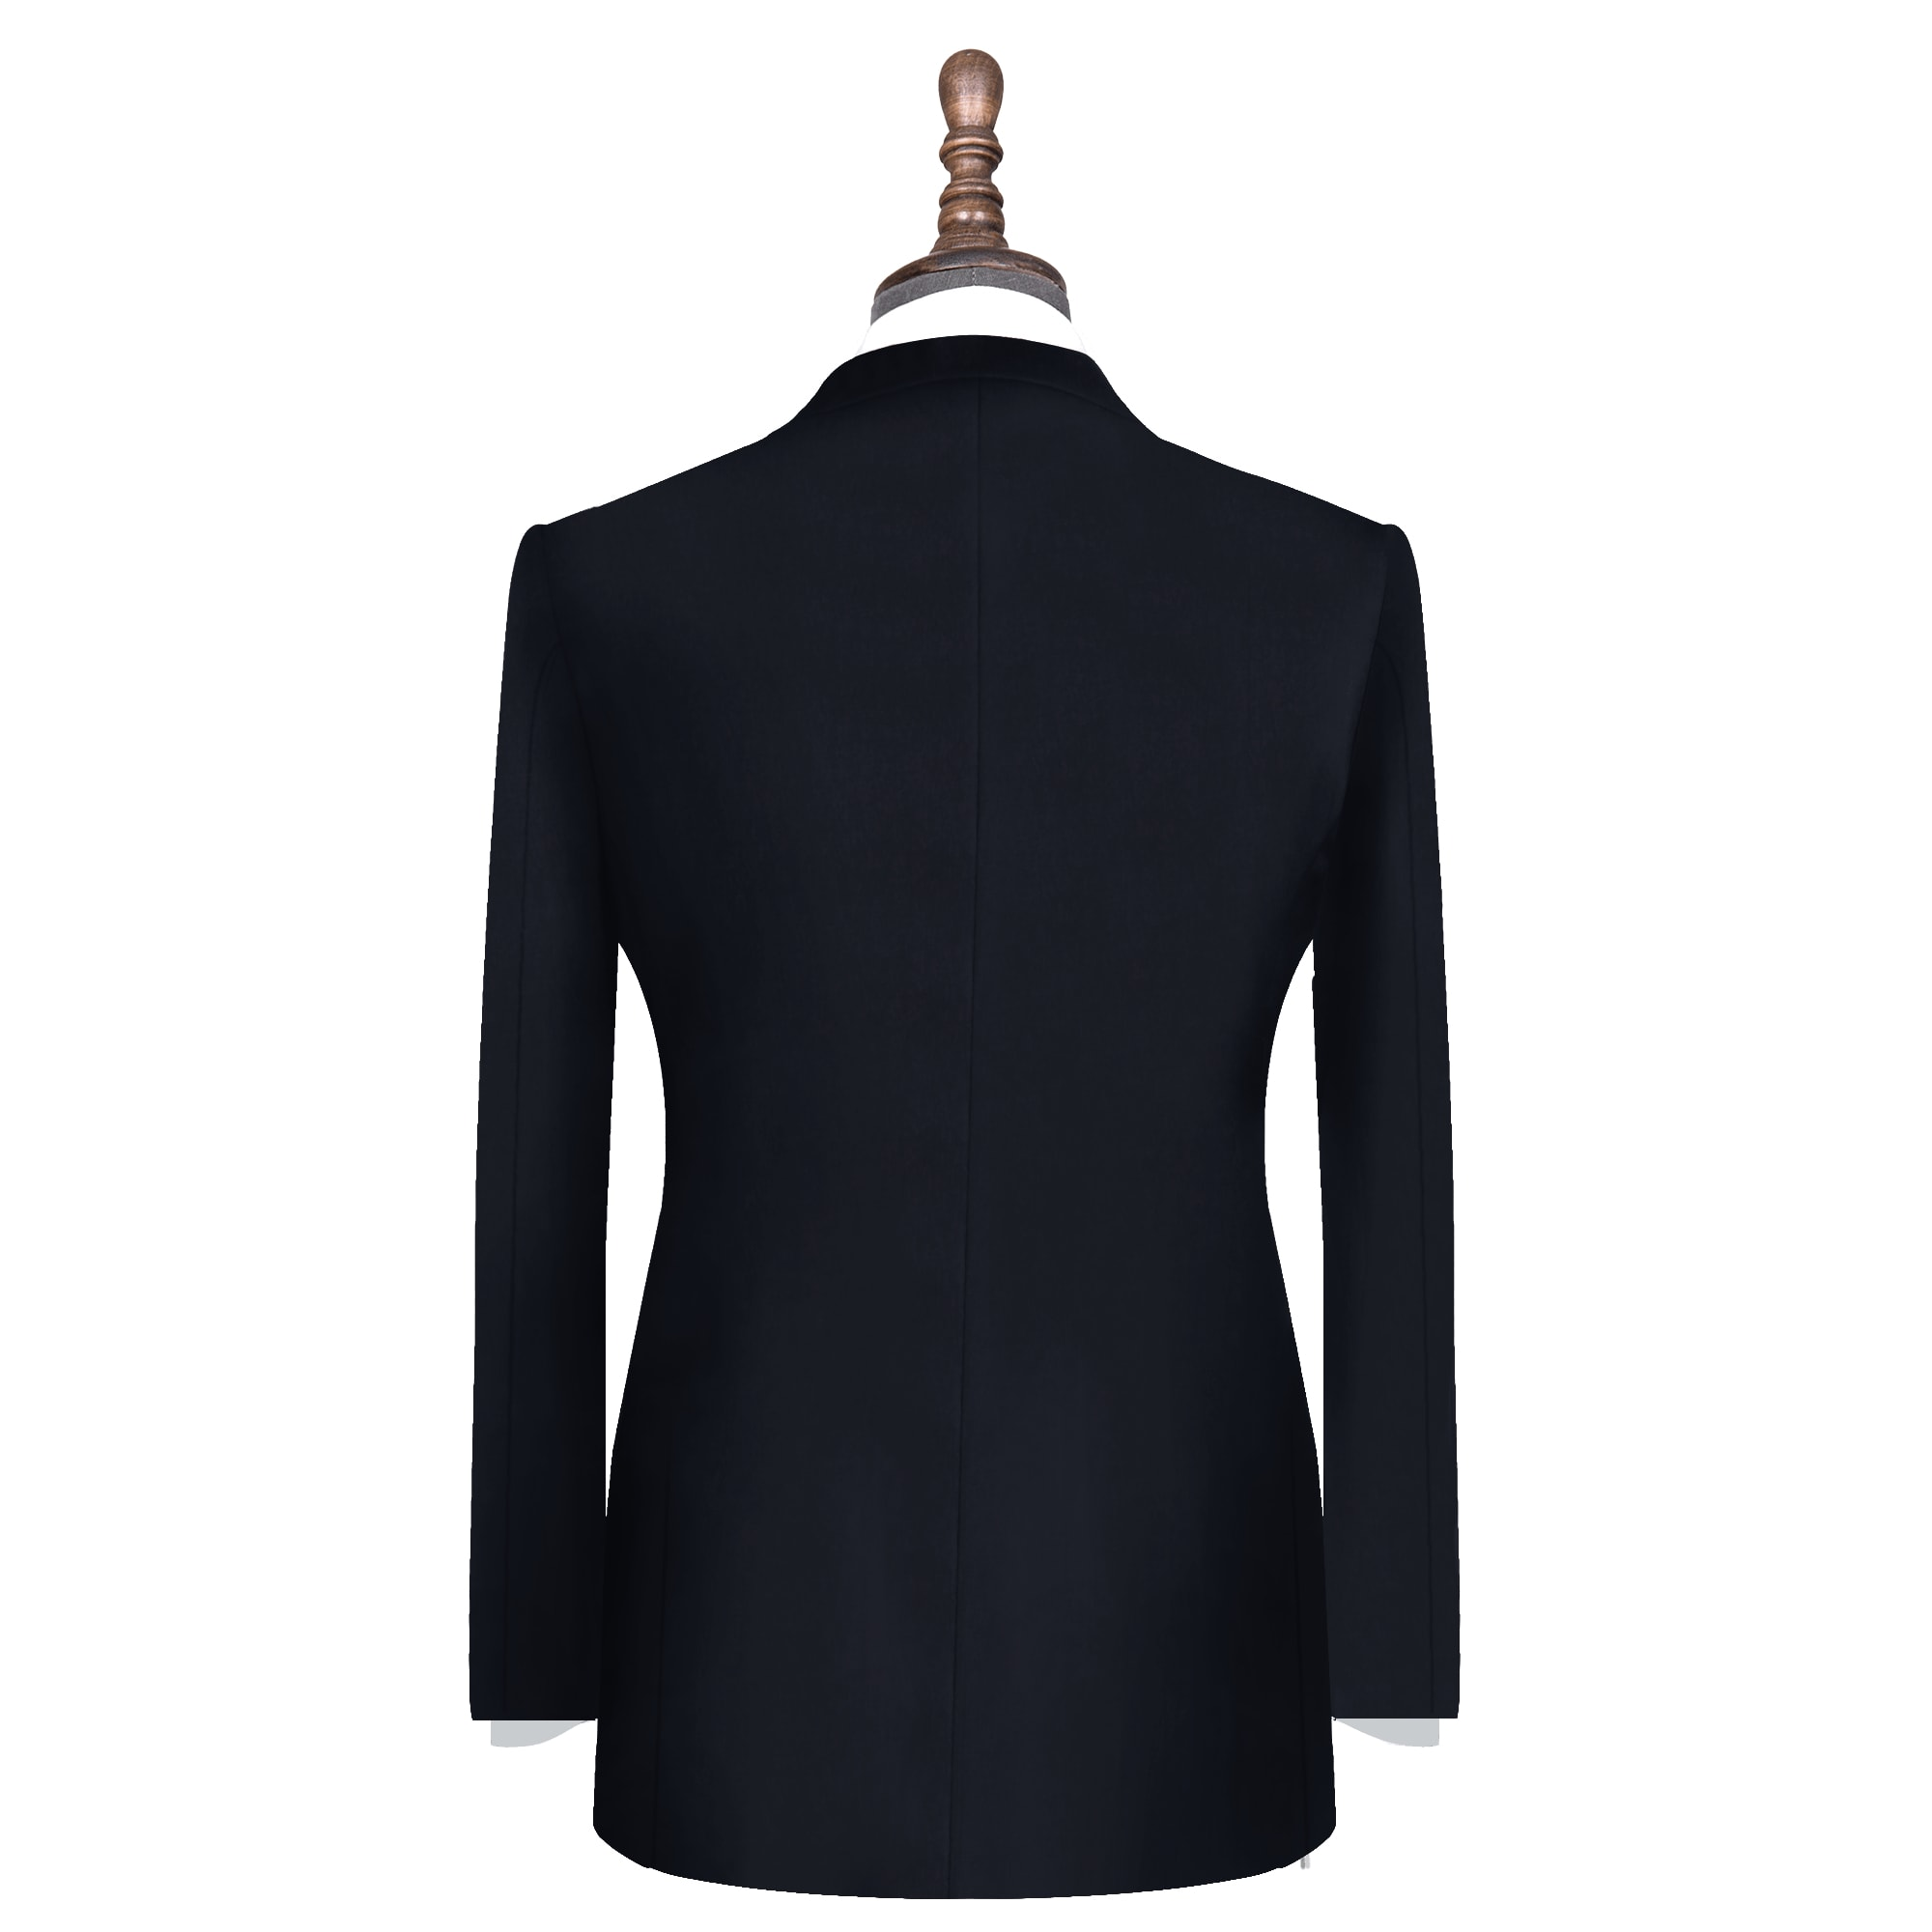 InStitchu Collection The Tetbury Jacket